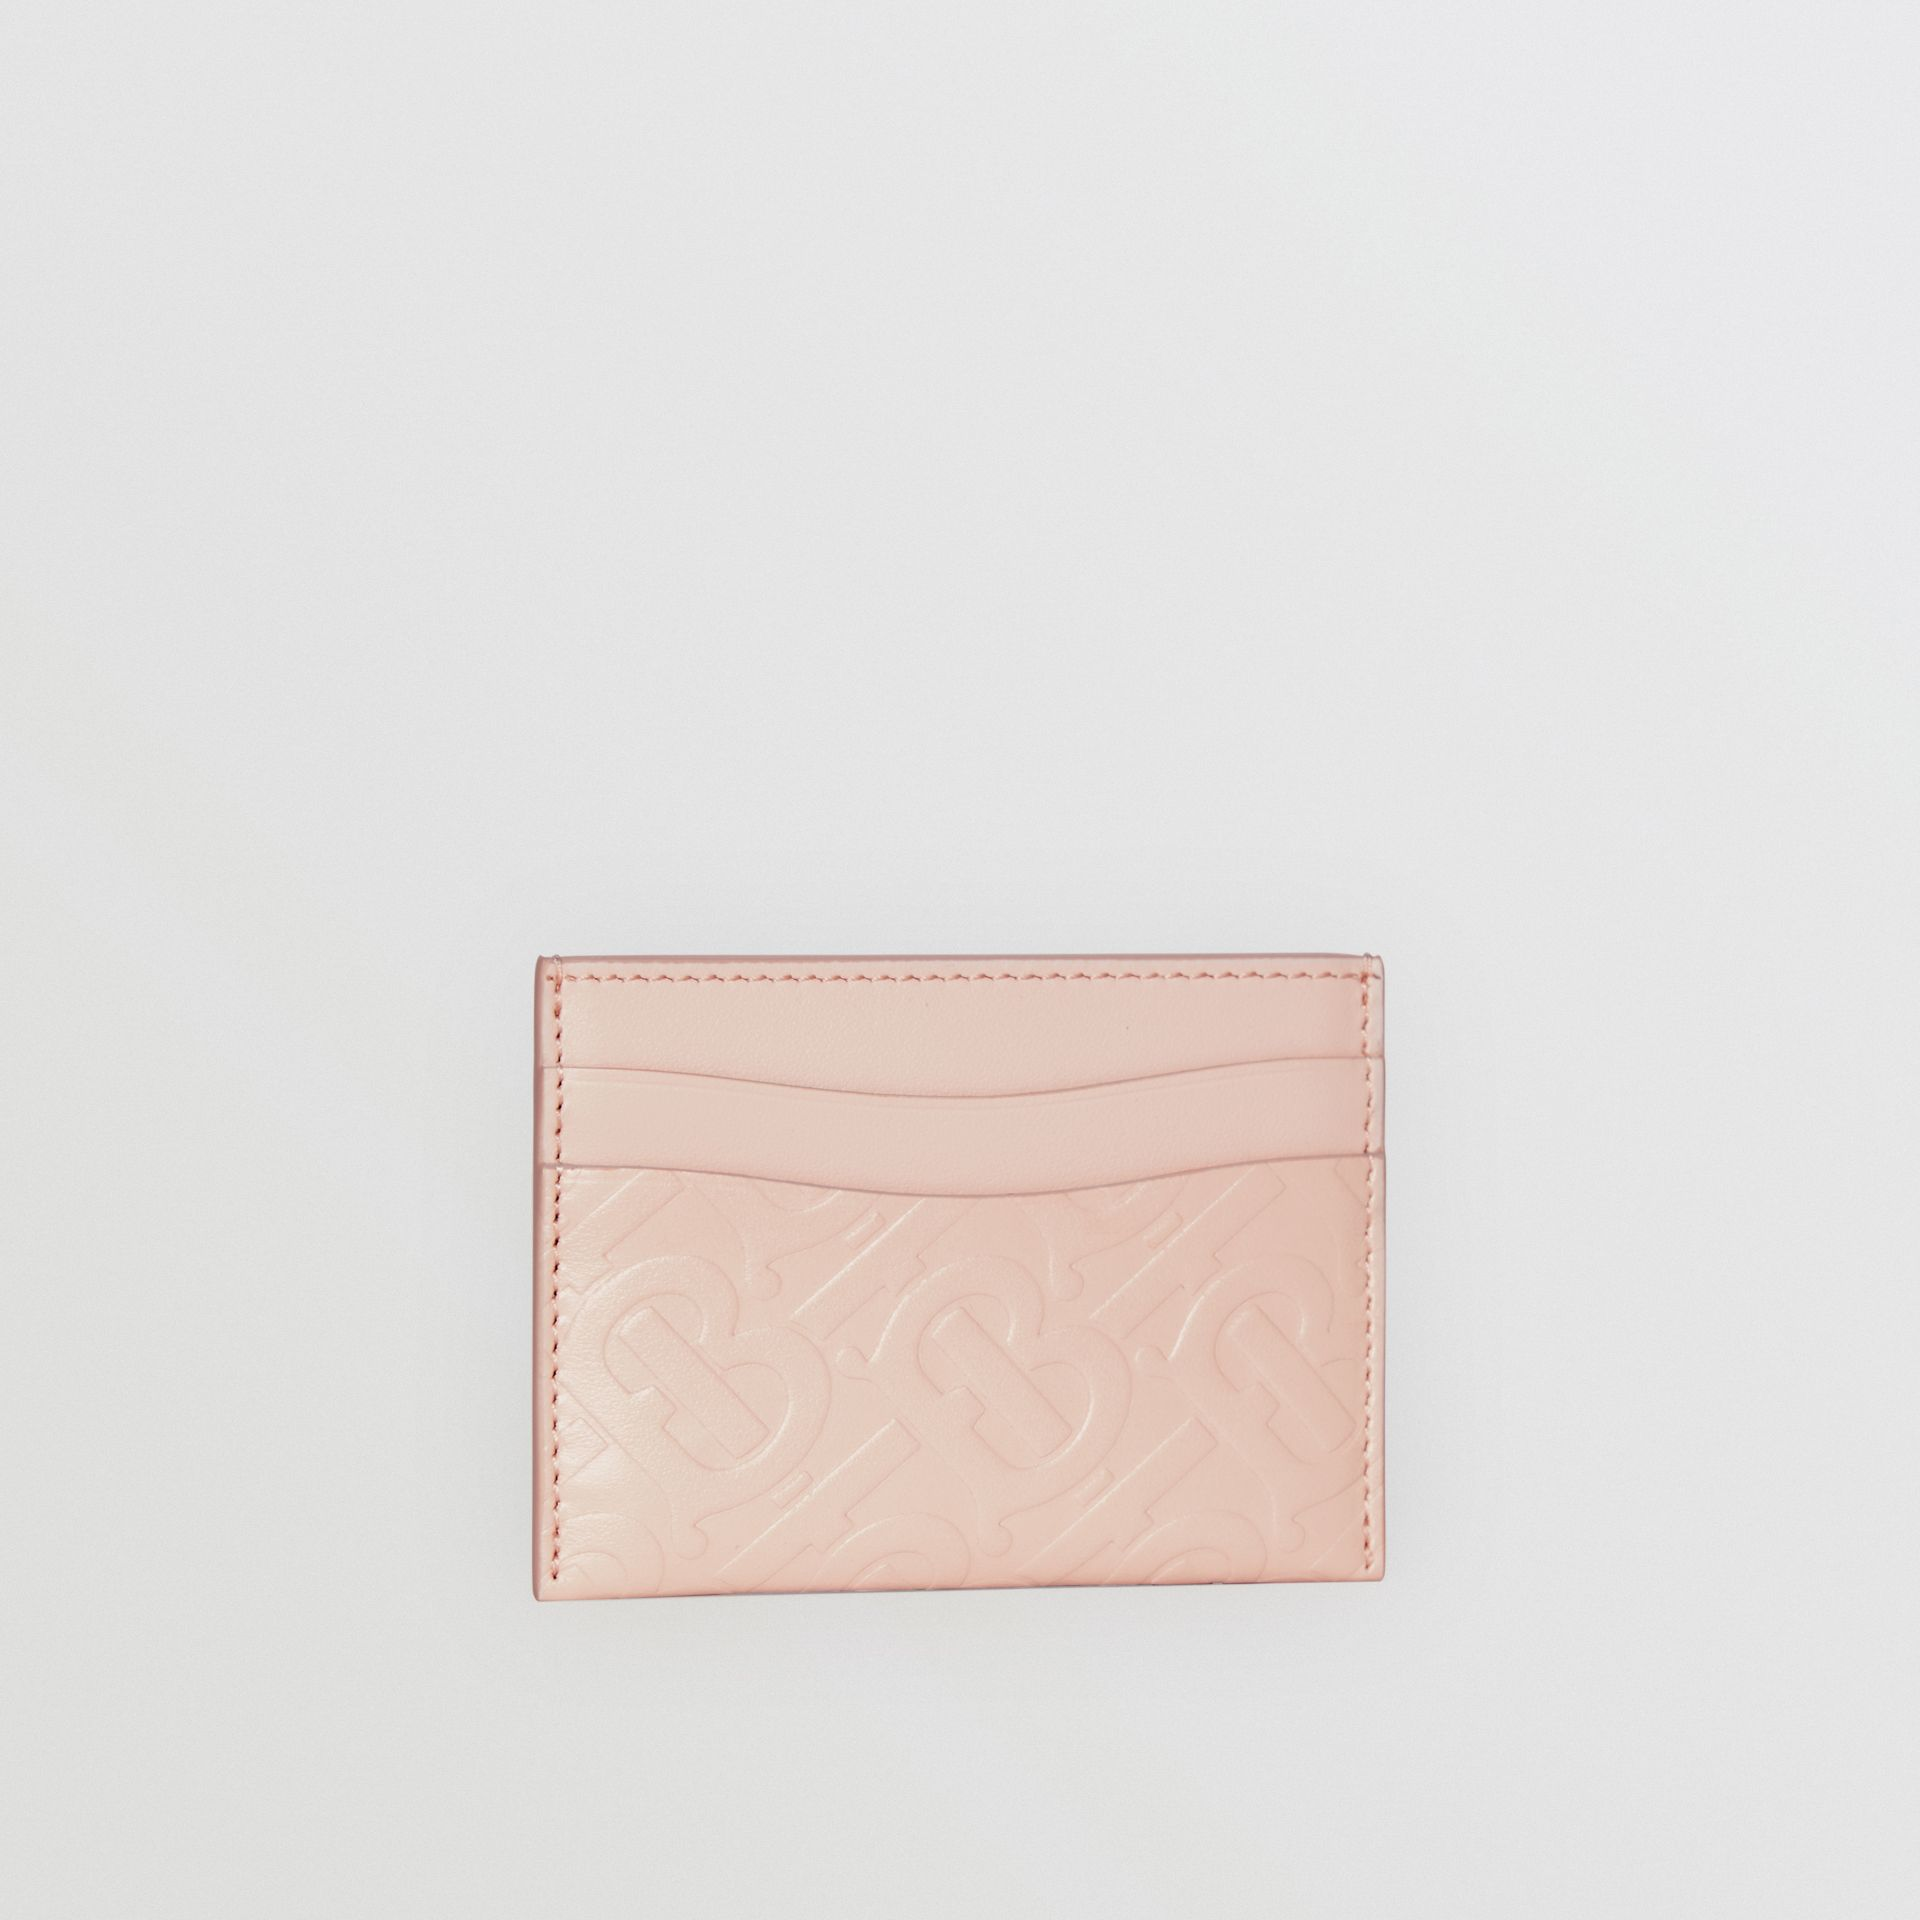 Monogram Leather Card Case in Rose Beige - Women | Burberry United Kingdom - gallery image 3